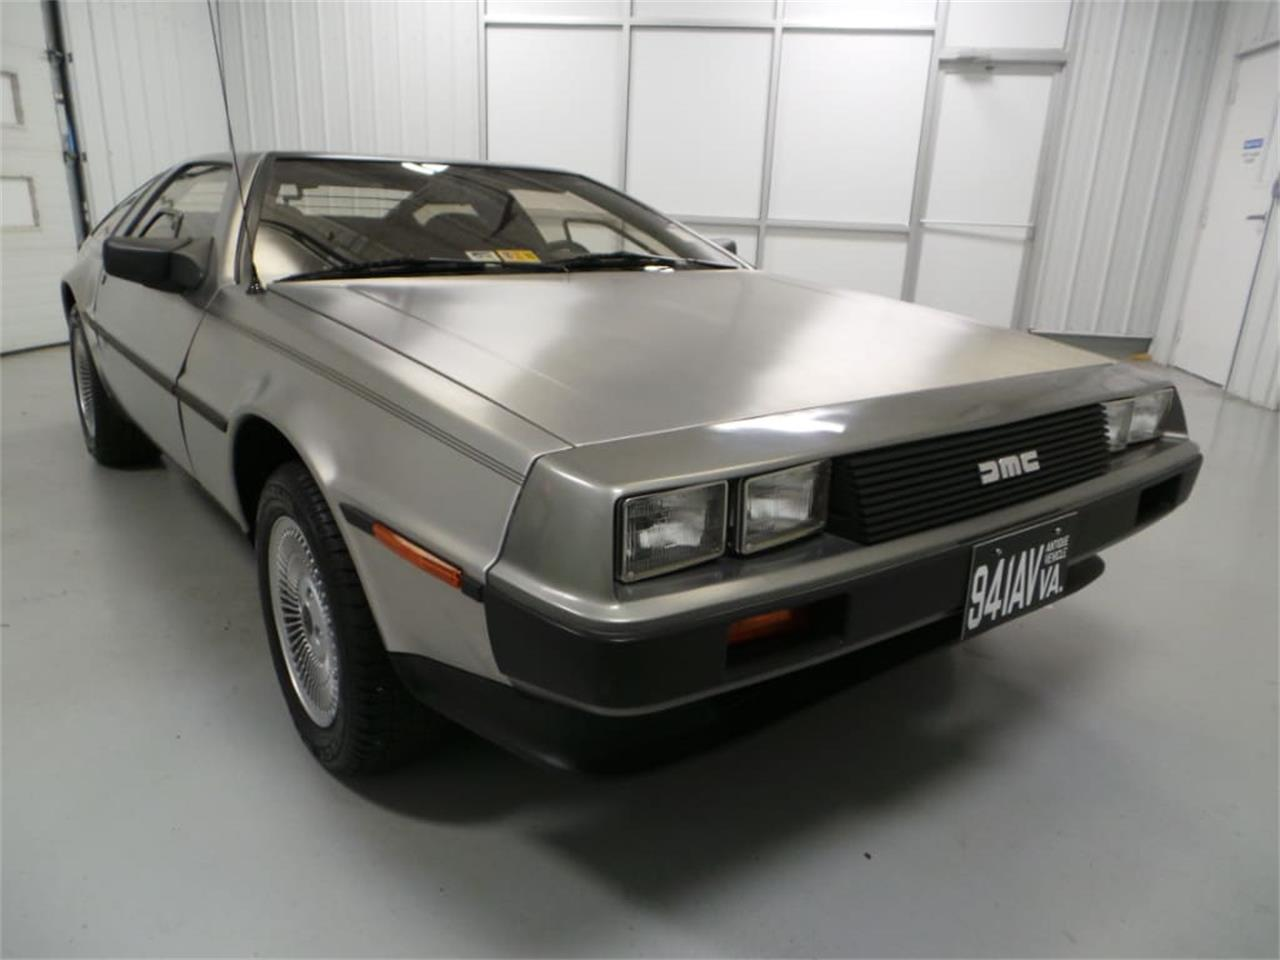 Large Picture of '81 DeLorean DMC-12 - $42,000.00 Offered by Duncan Imports & Classic Cars - JLCI